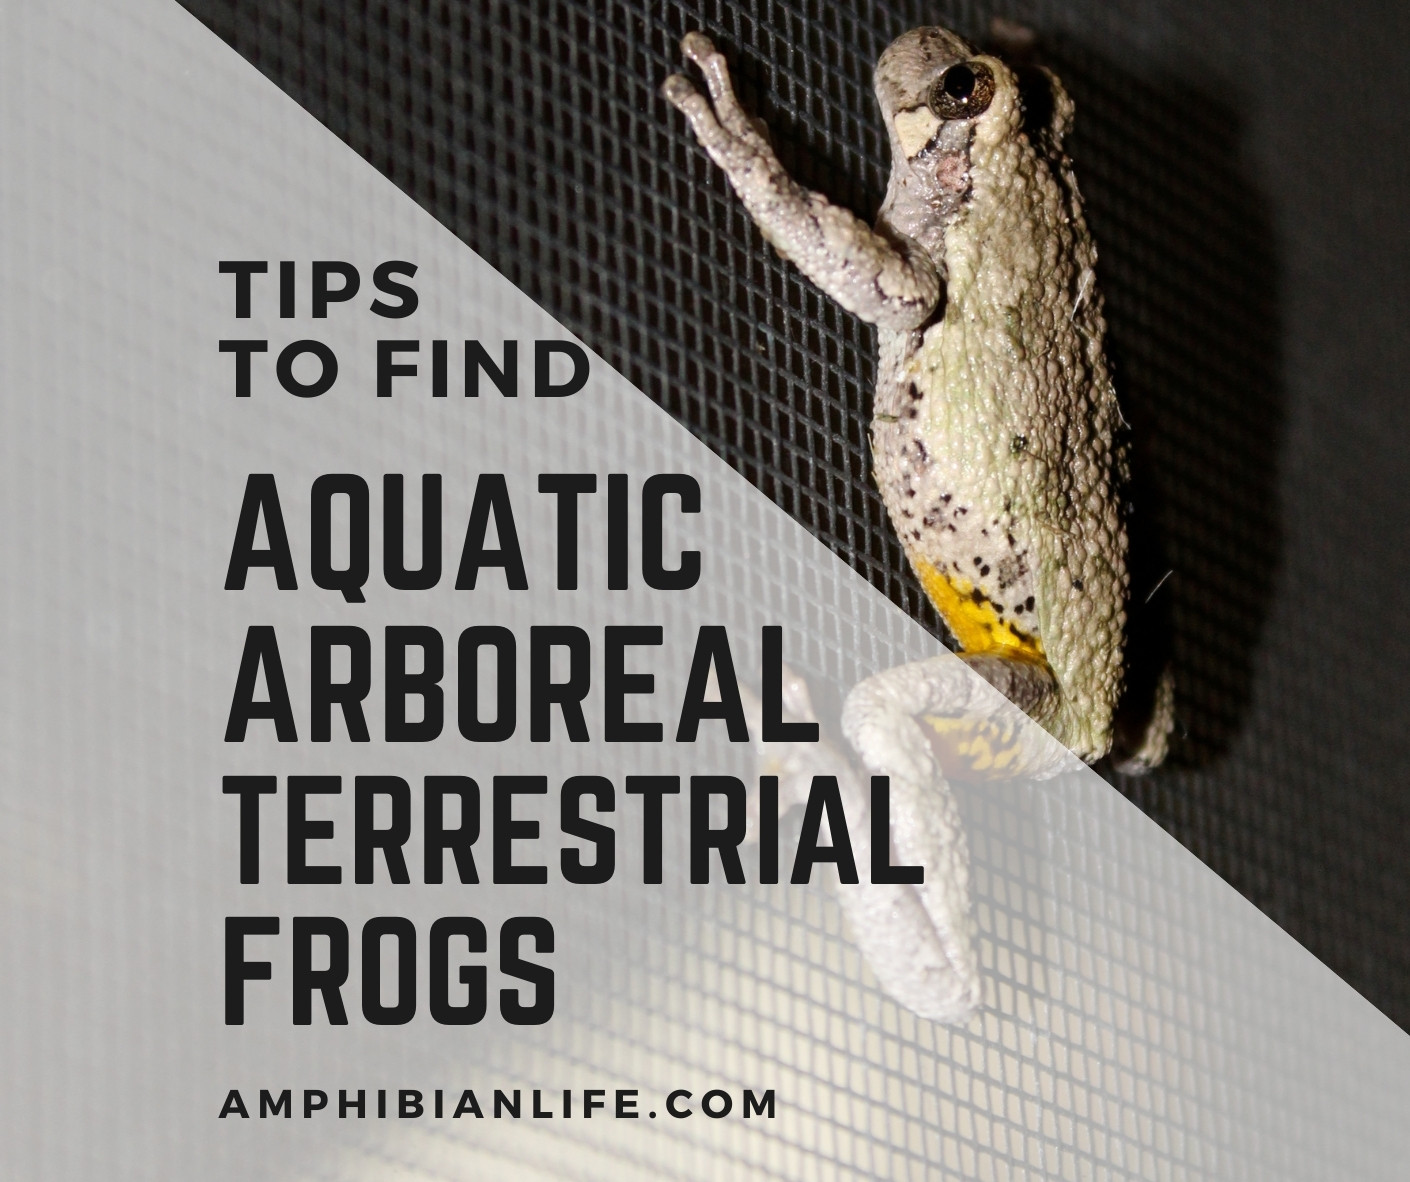 12 Tips for Finding Frogs Aquatic, Terrestrial and Arboreal